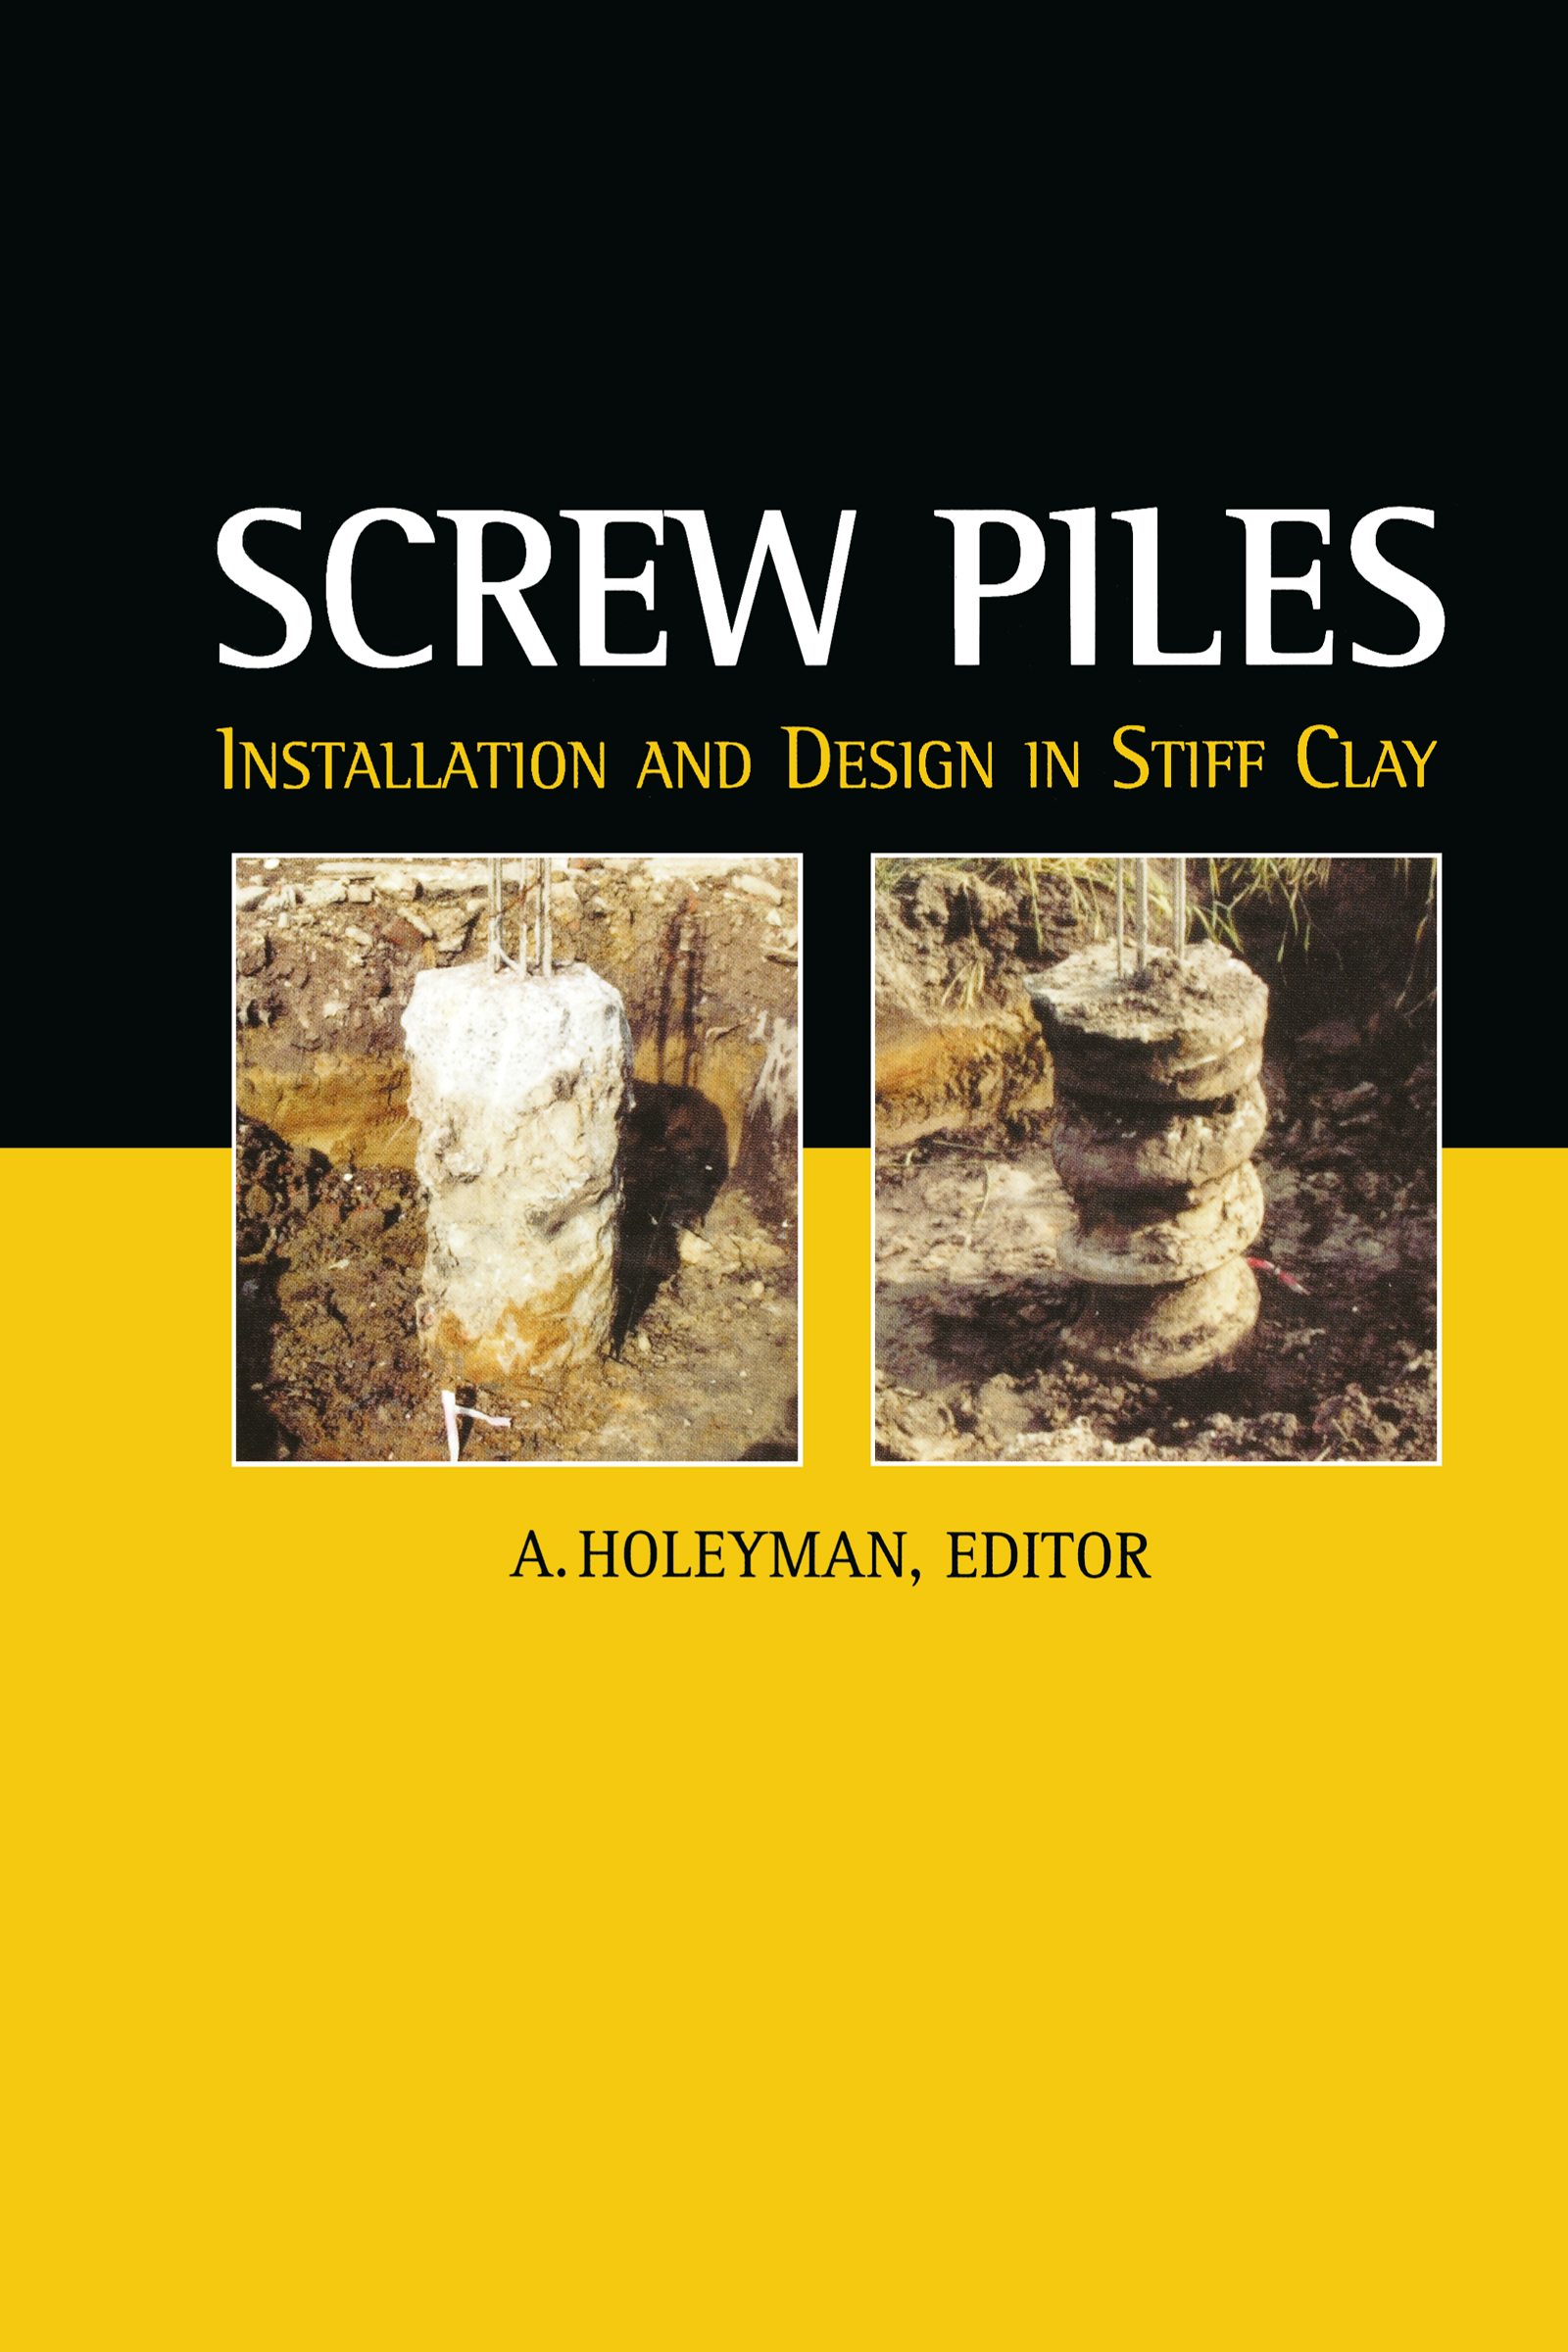 Screw Piles - Installation and Design in Stiff Clay